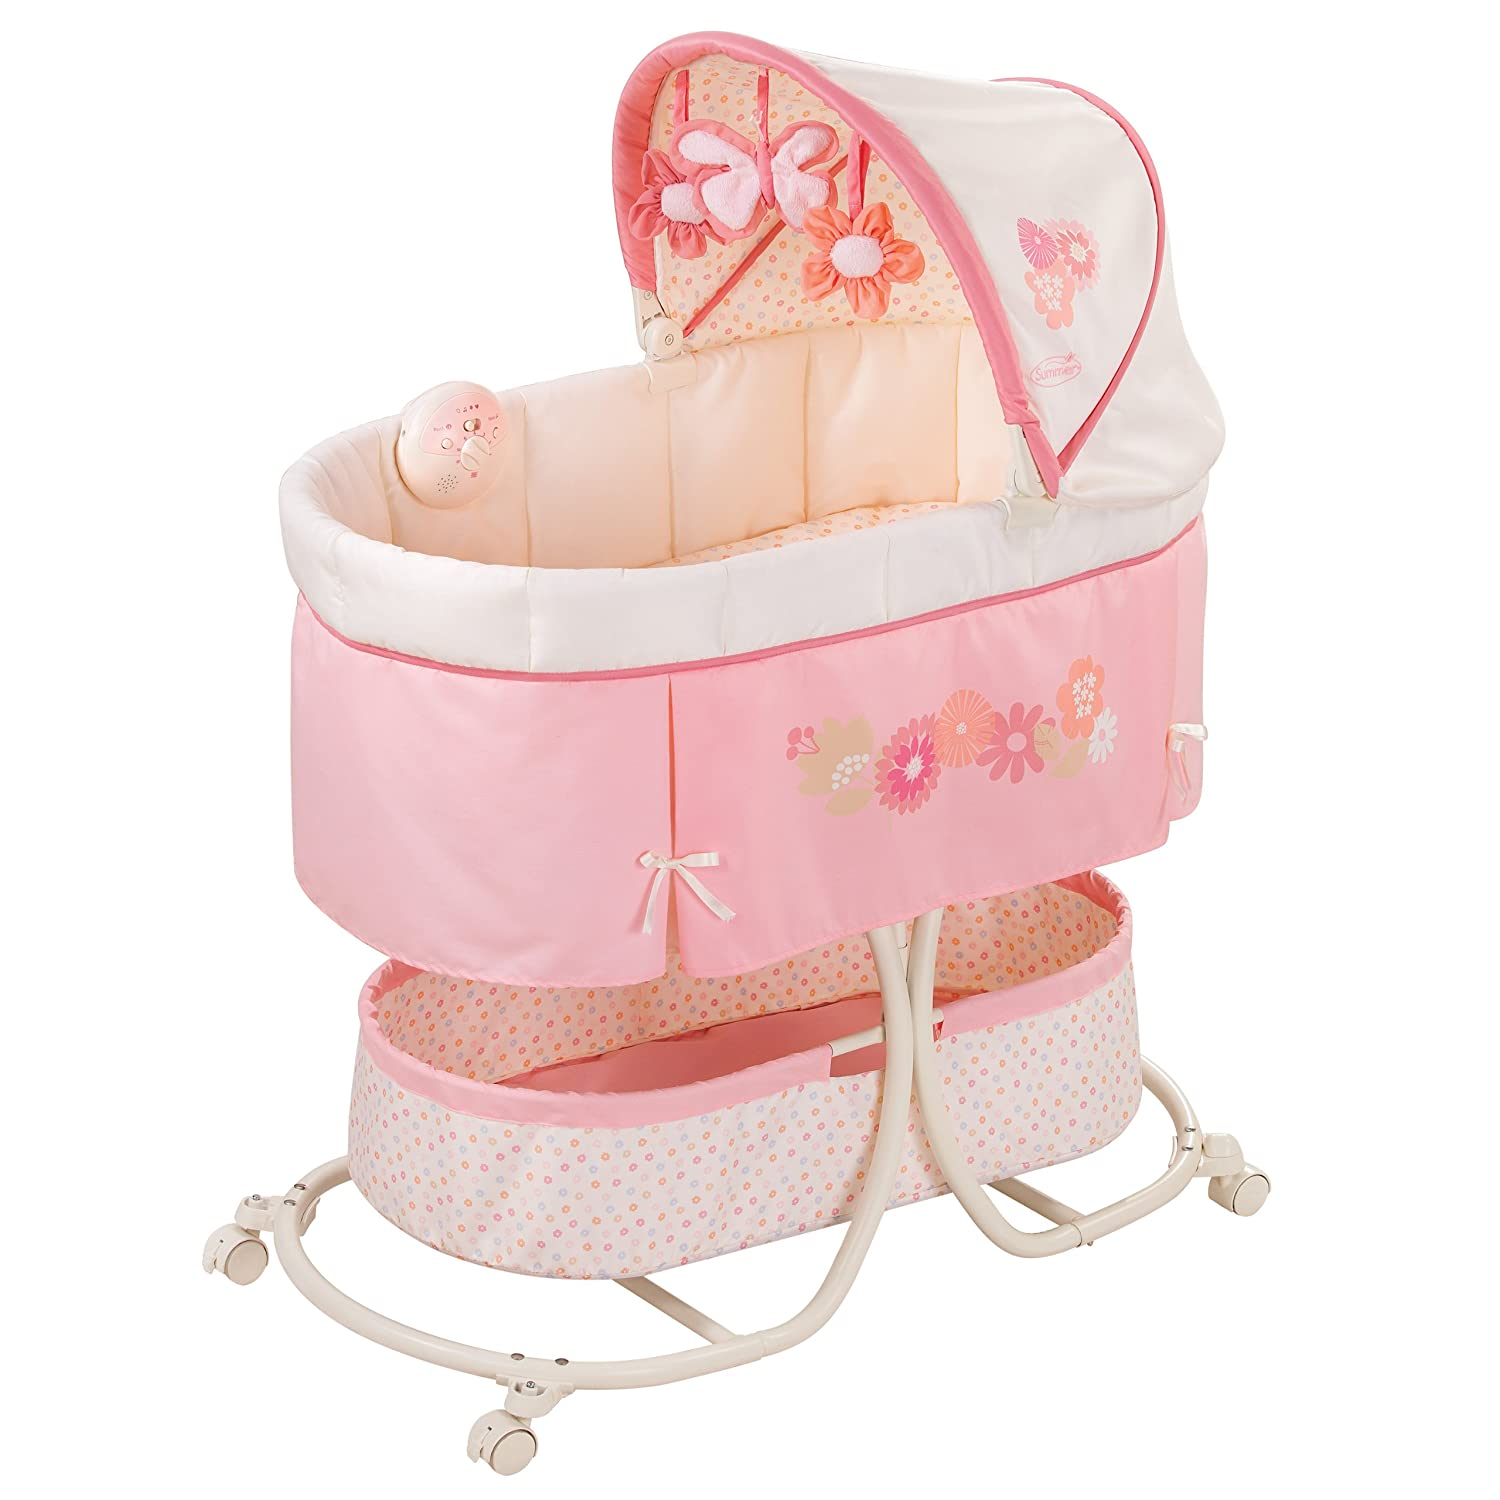 Summer Infant Soothe & Sleep Bassinet with Motion, Lila 26130